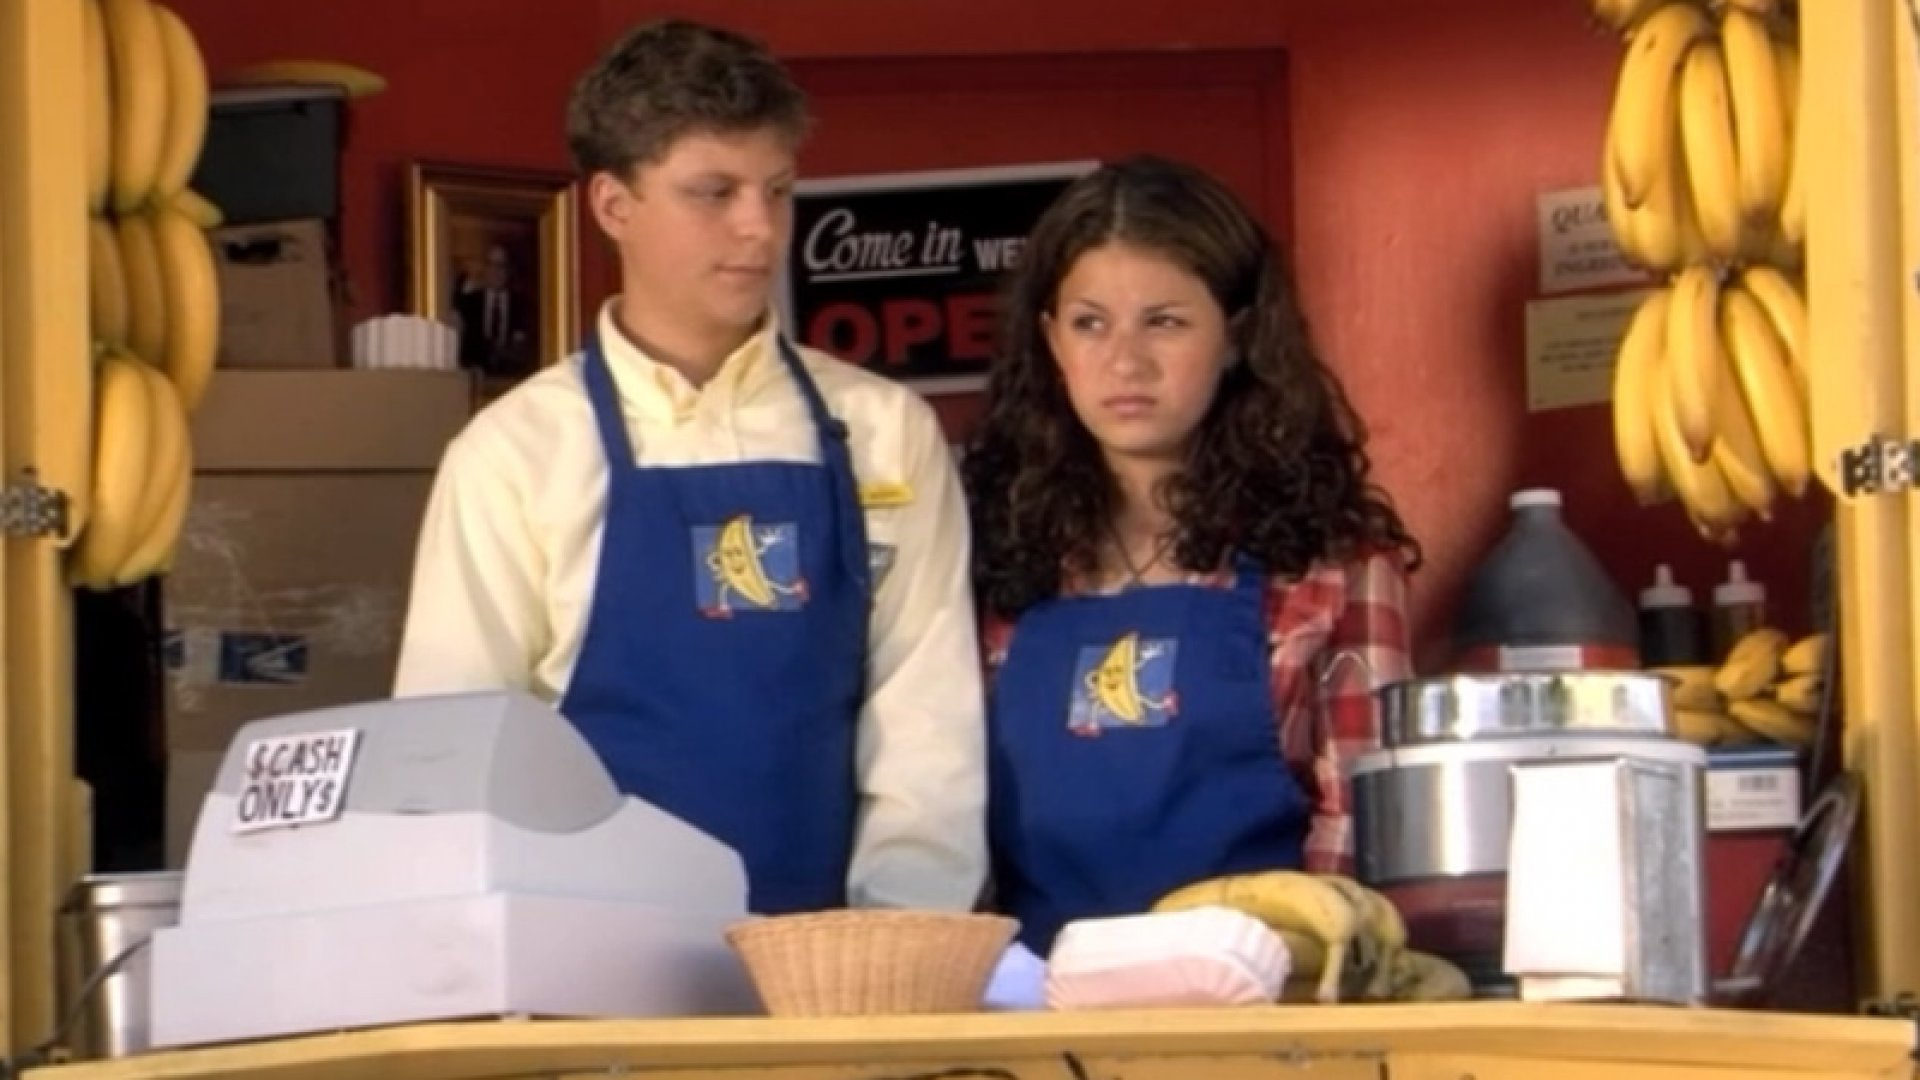 3 Tips for How Not to Run a Small Business From 'Arrested Development'